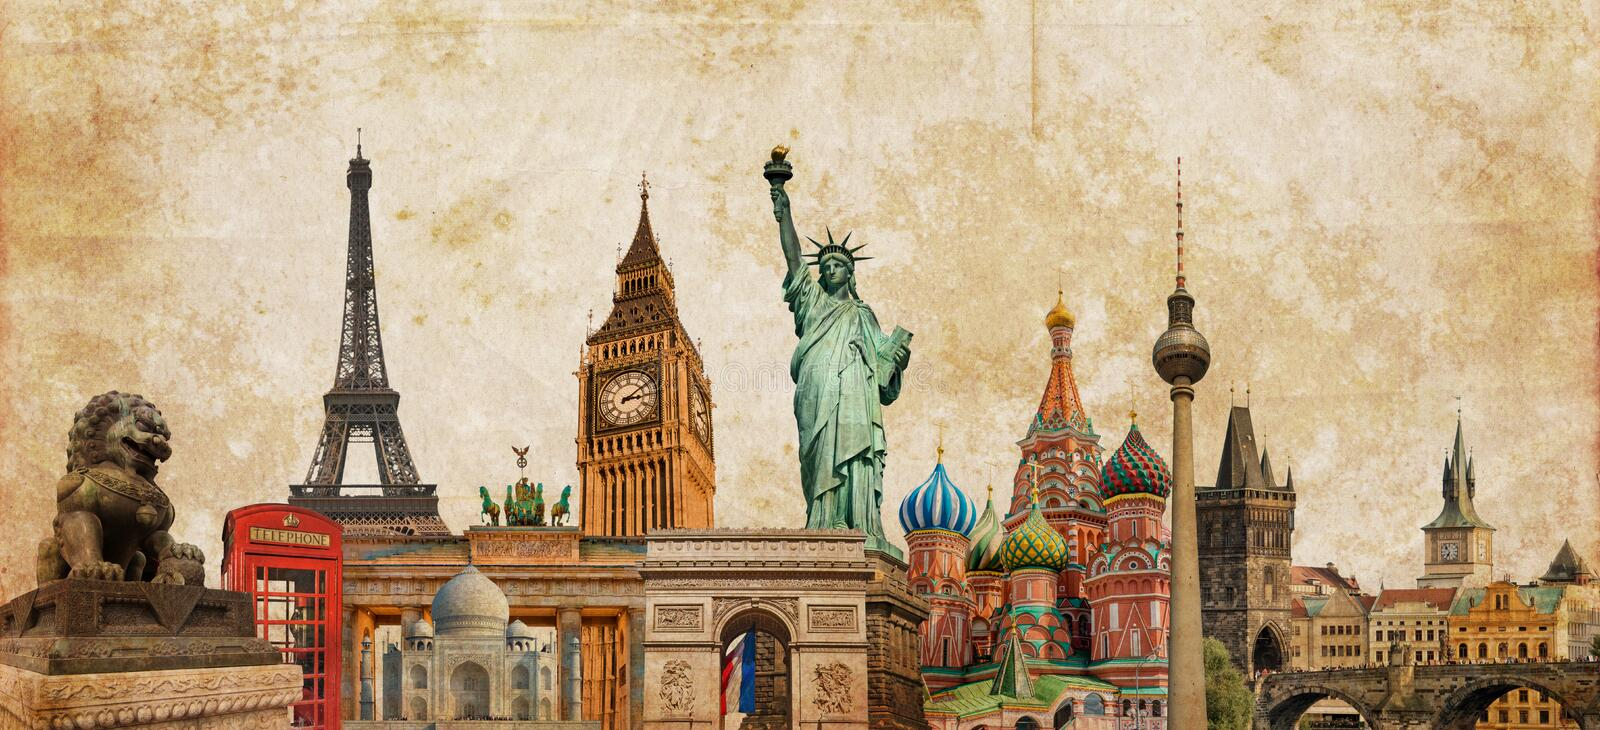 World landmarks photo collage on vintage tes sepia textured background, travel tourism and study around the world concept, vintag. World landmarks photo collage